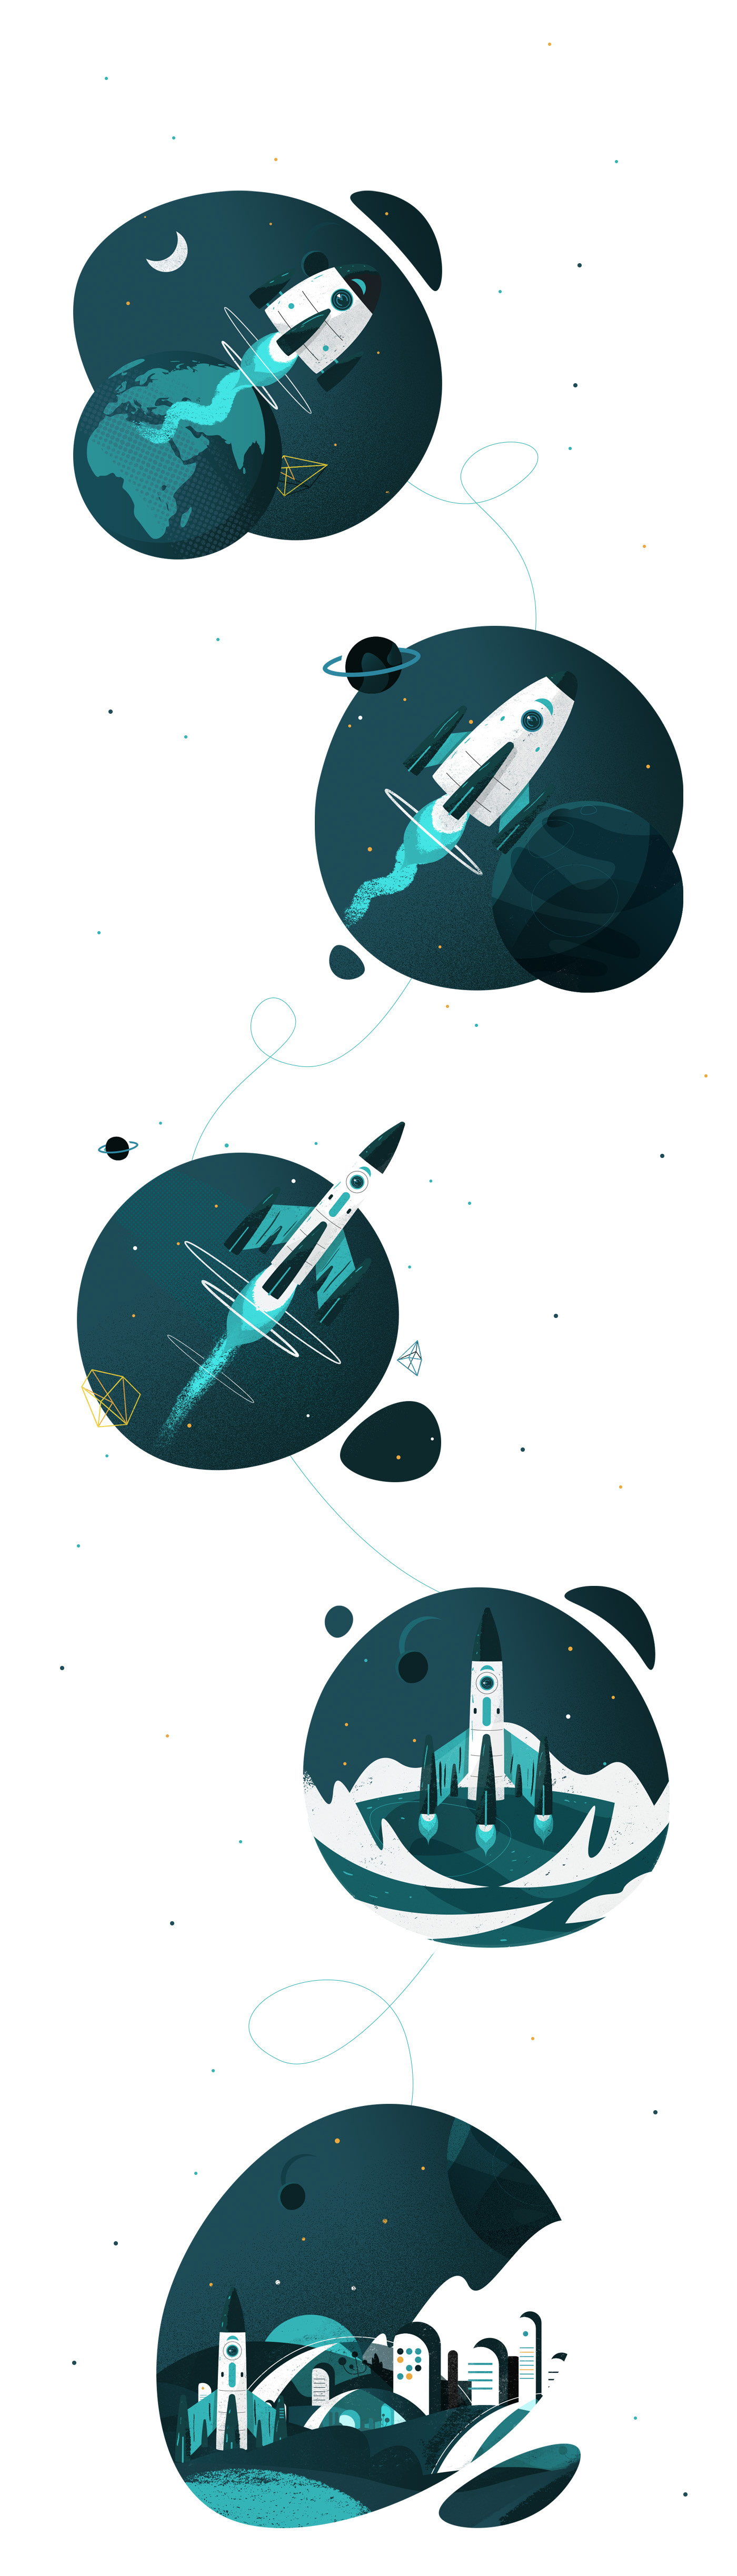 Space  spaceship Planets galaxy sci-fi astronaut spationaut